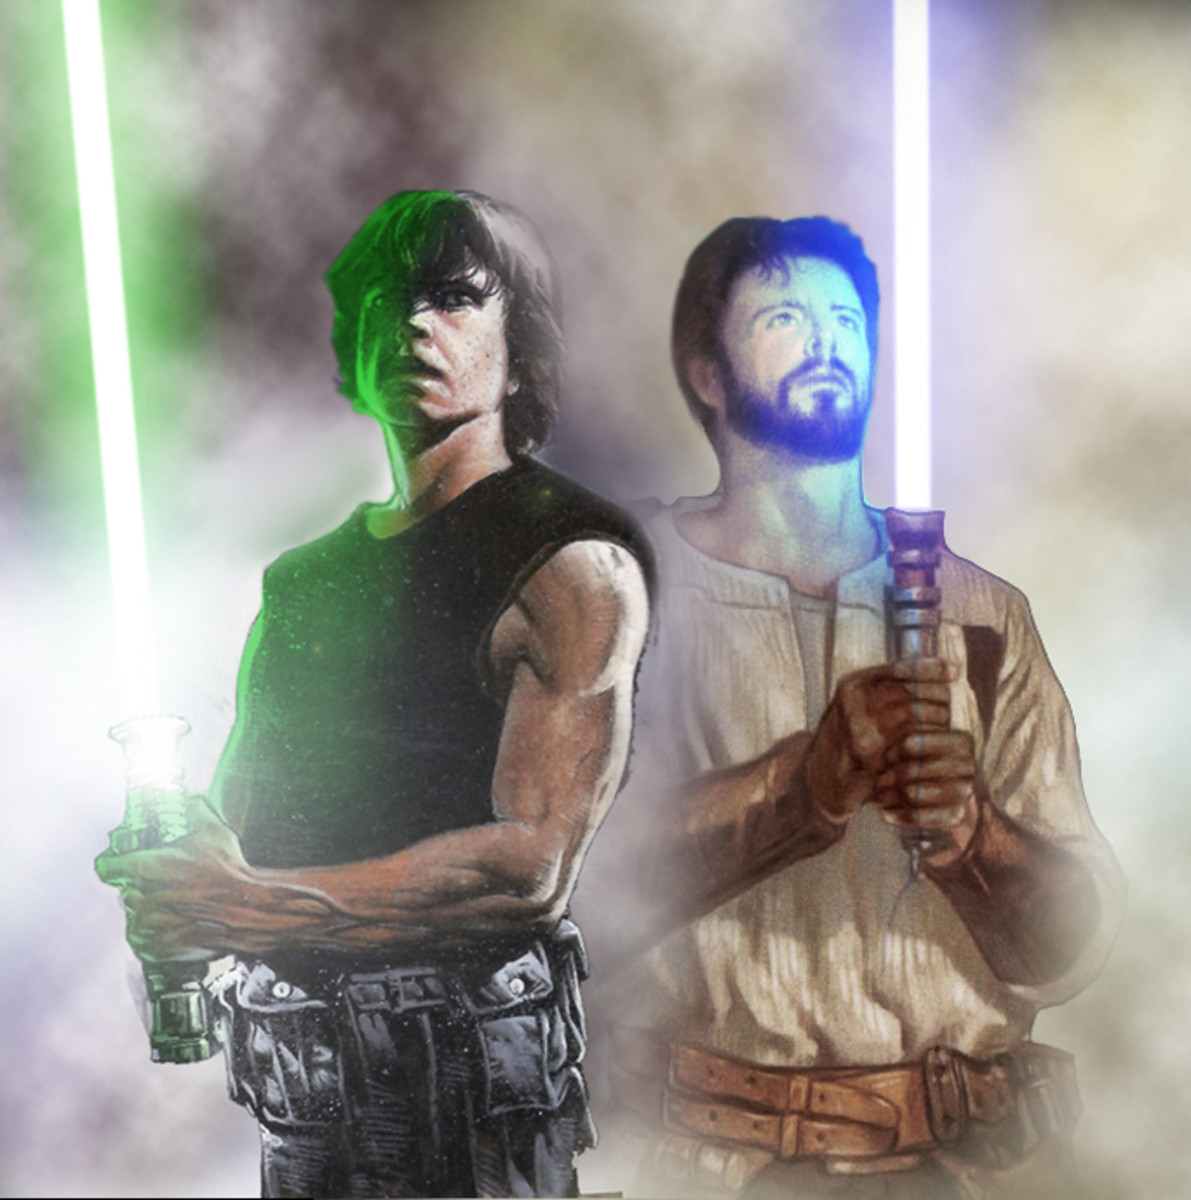 Luke Skywalker and Kyle Katarn